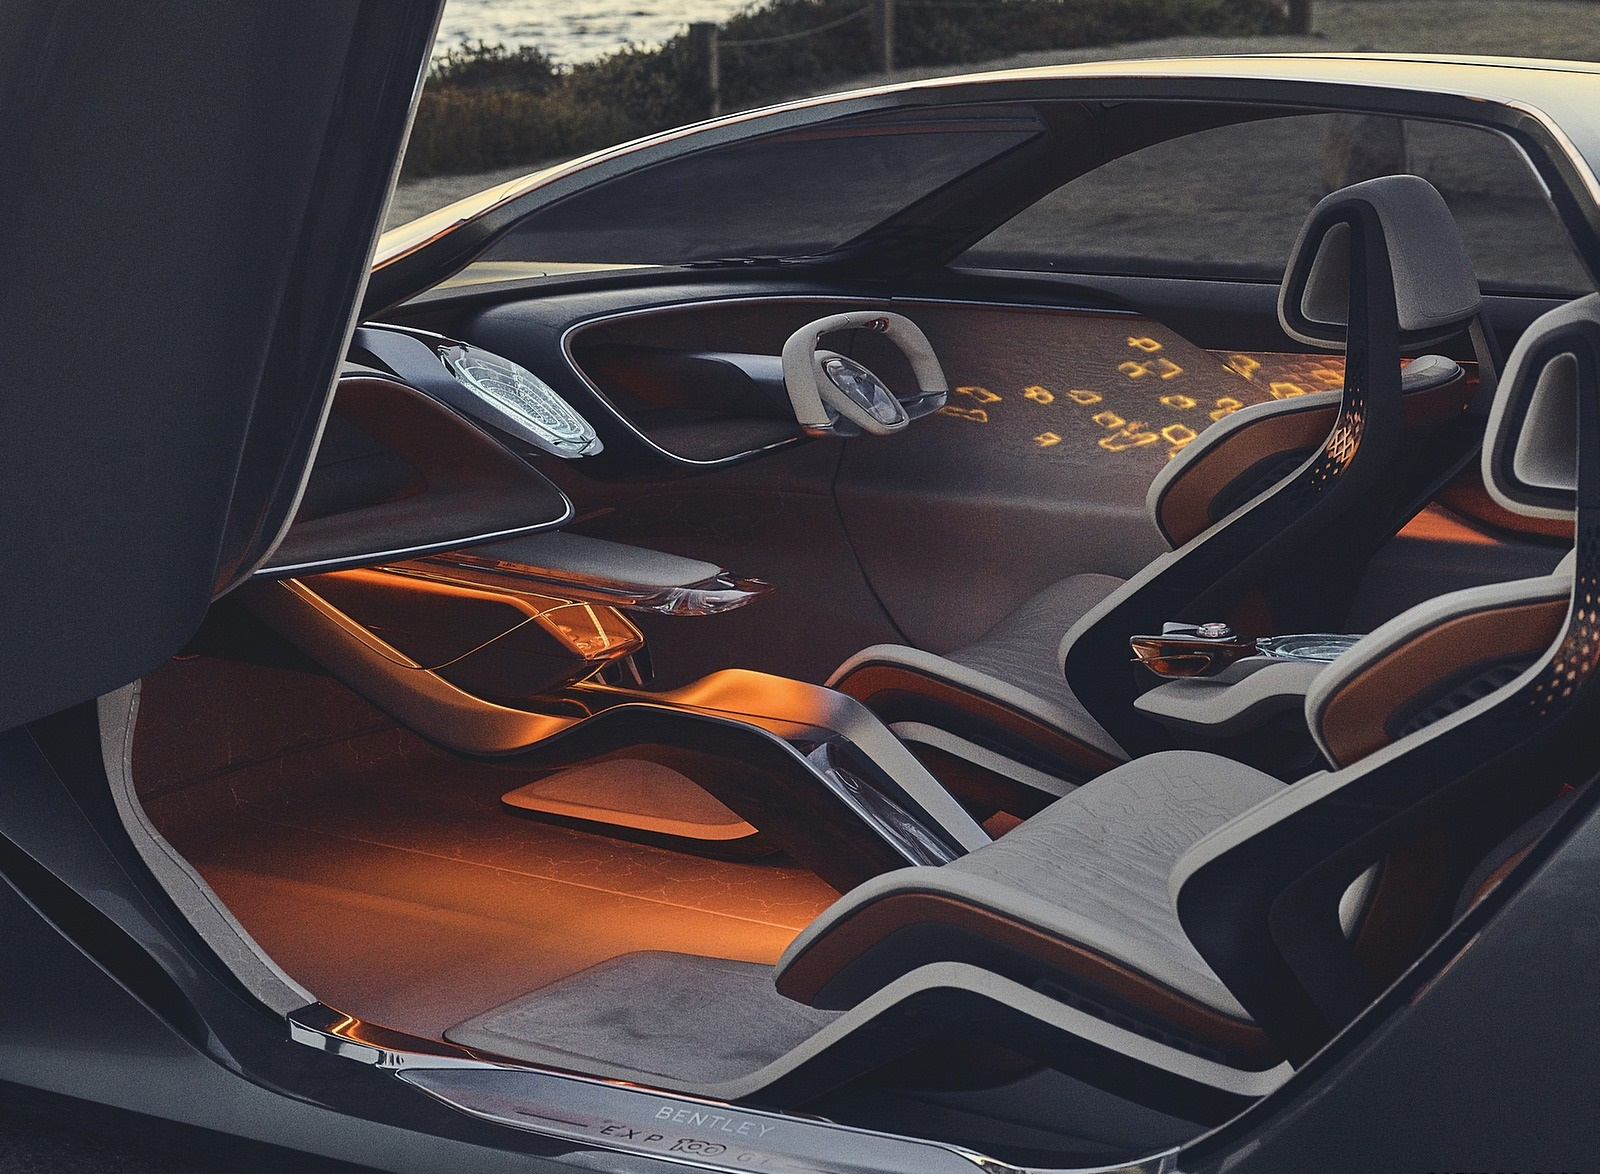 2019 Bentley EXP 100 GT Concept Interior Wallpapers (8)